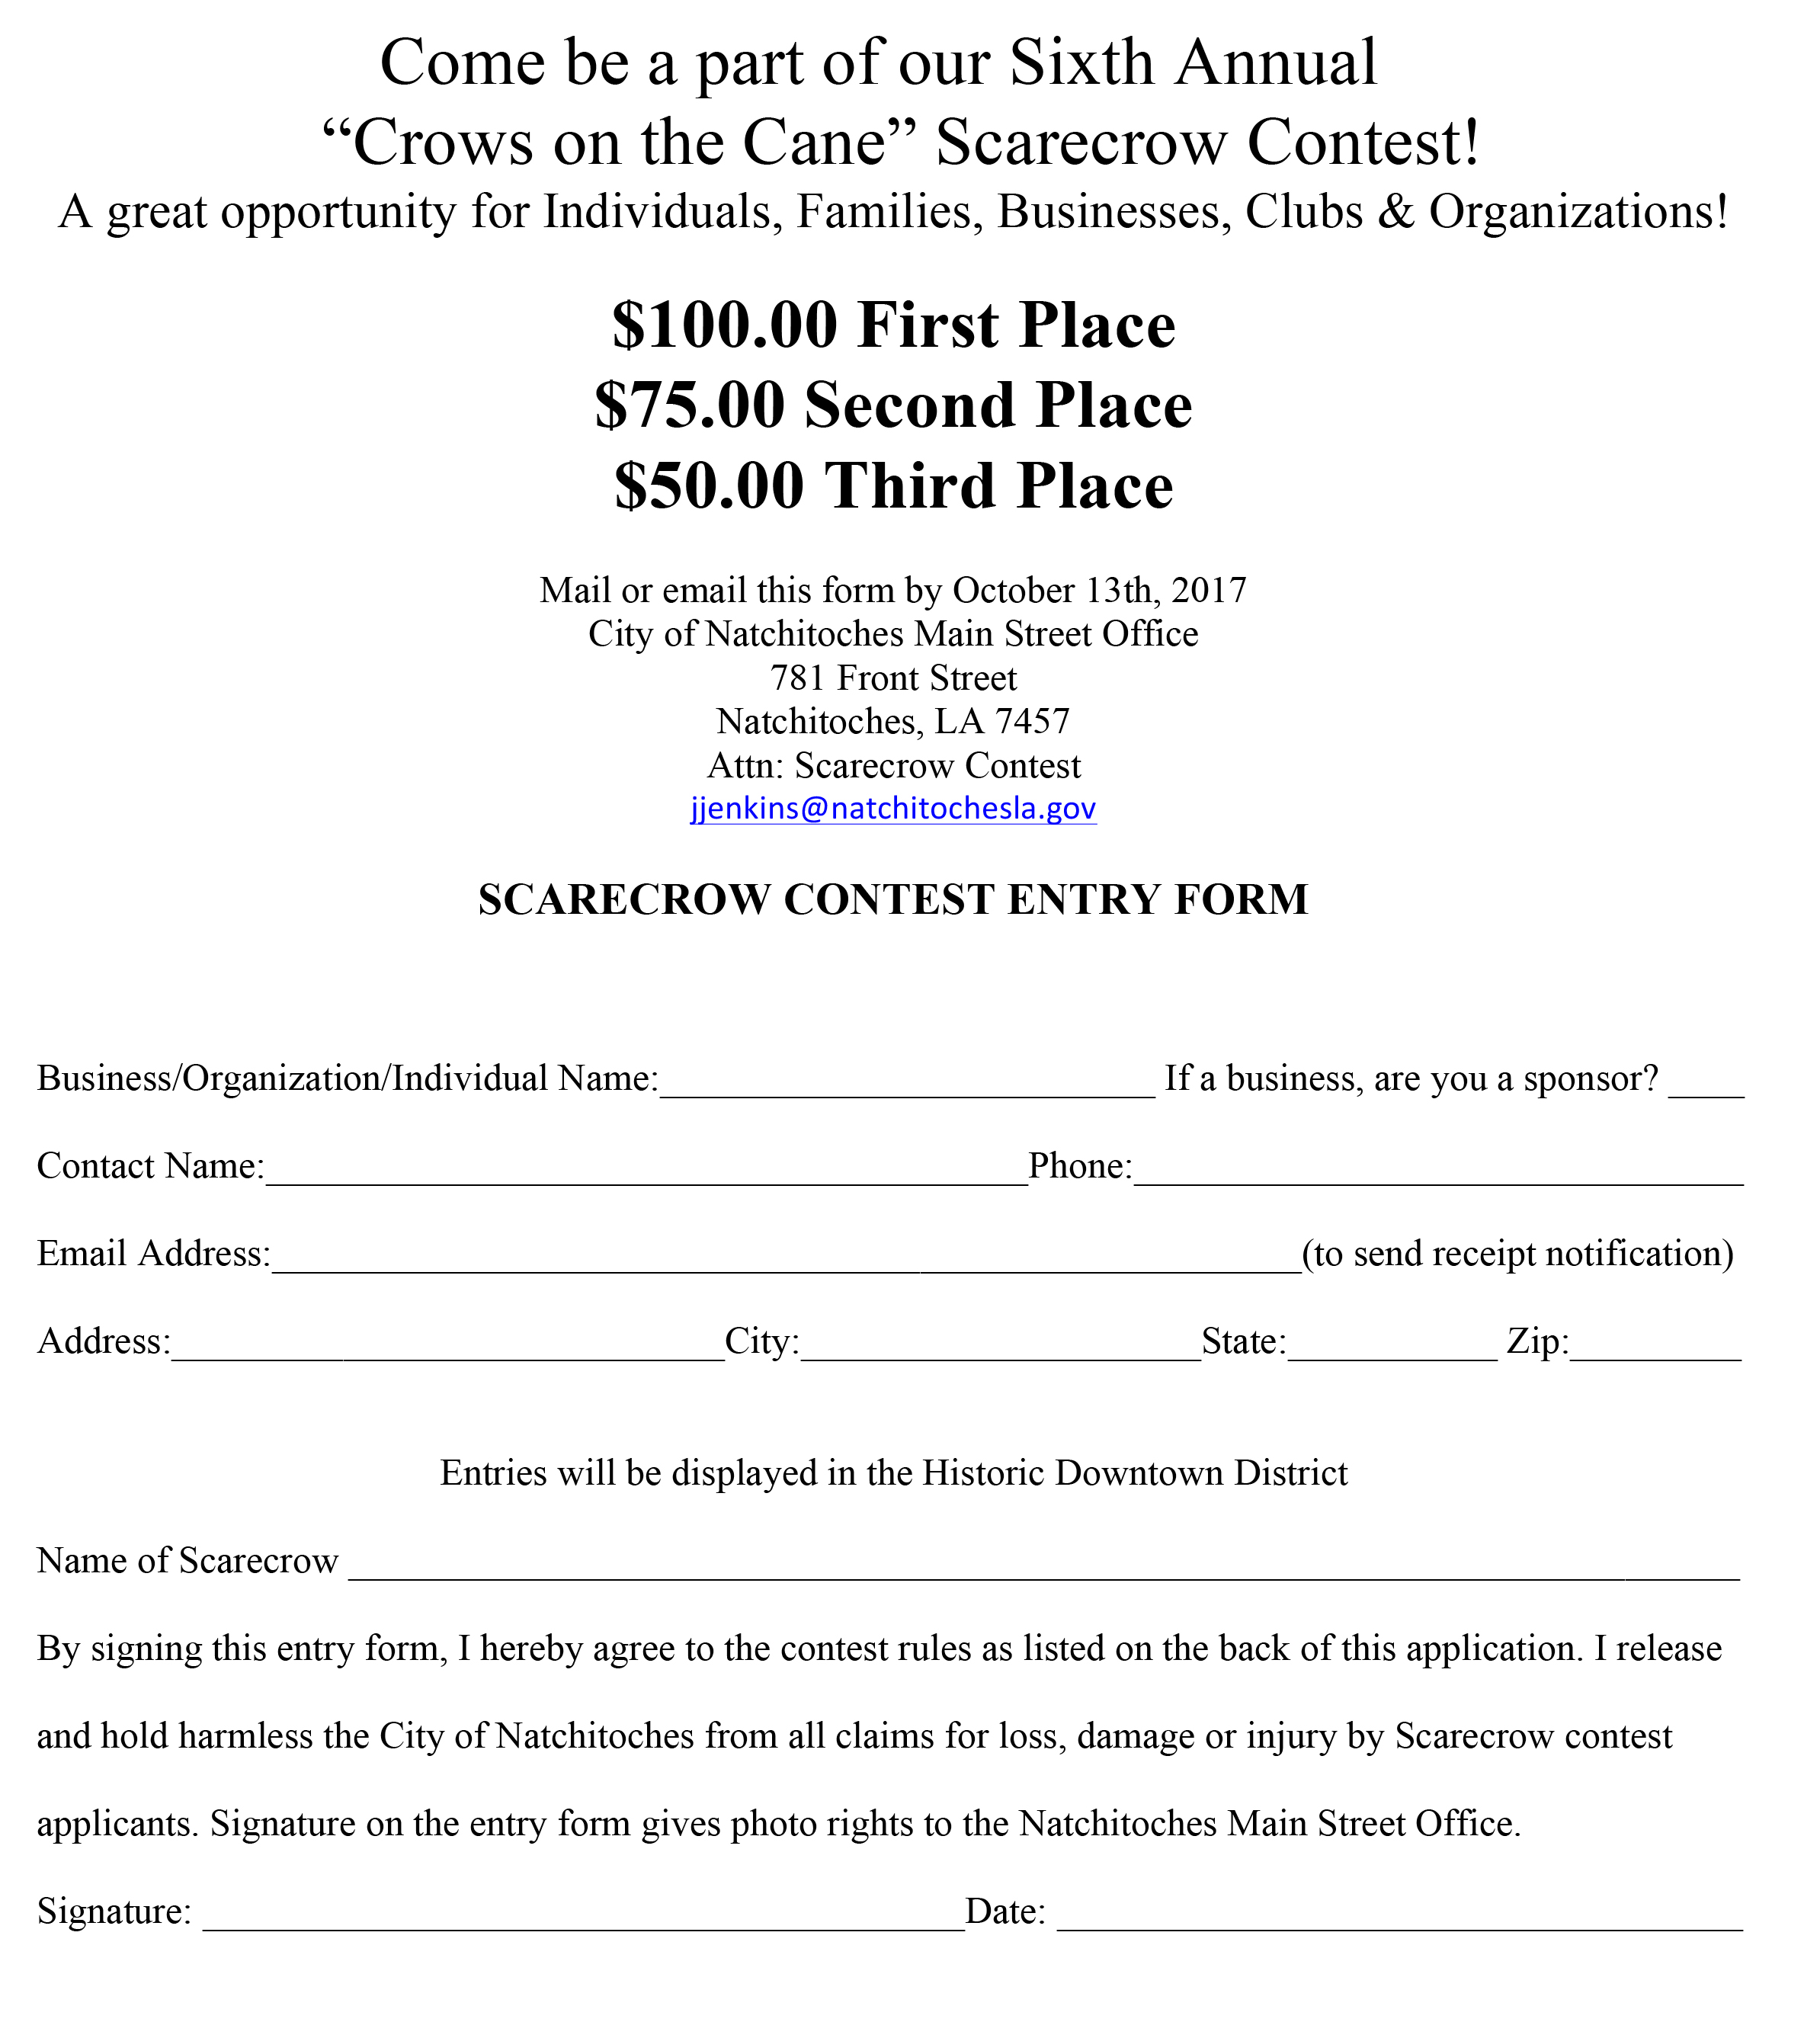 Microsoft Word – 2017 SCARECROW CONTEST ENTRY FORM.doc ...